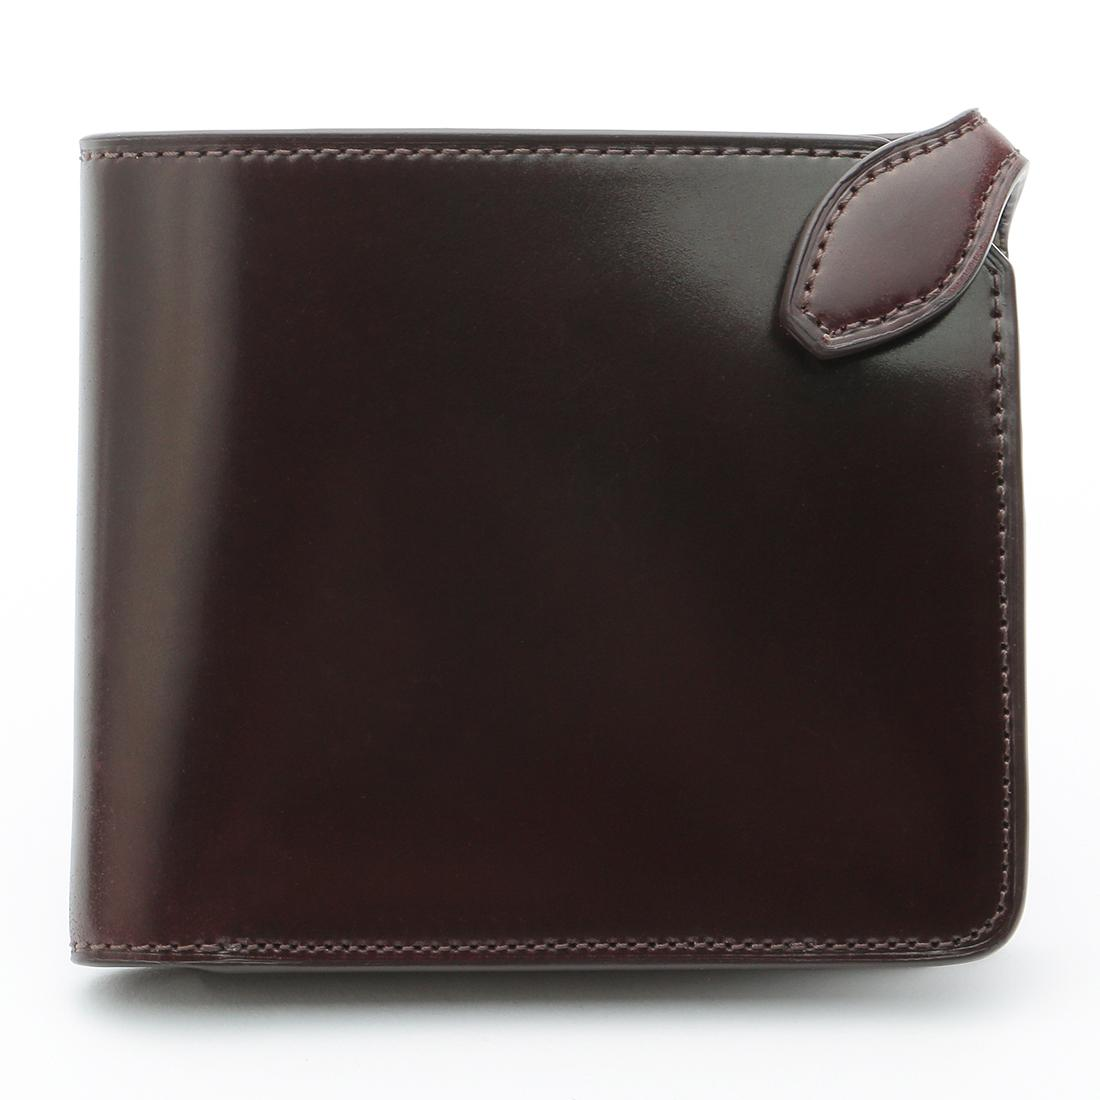 Galleriant Cordovan Wallet: Dark Brown